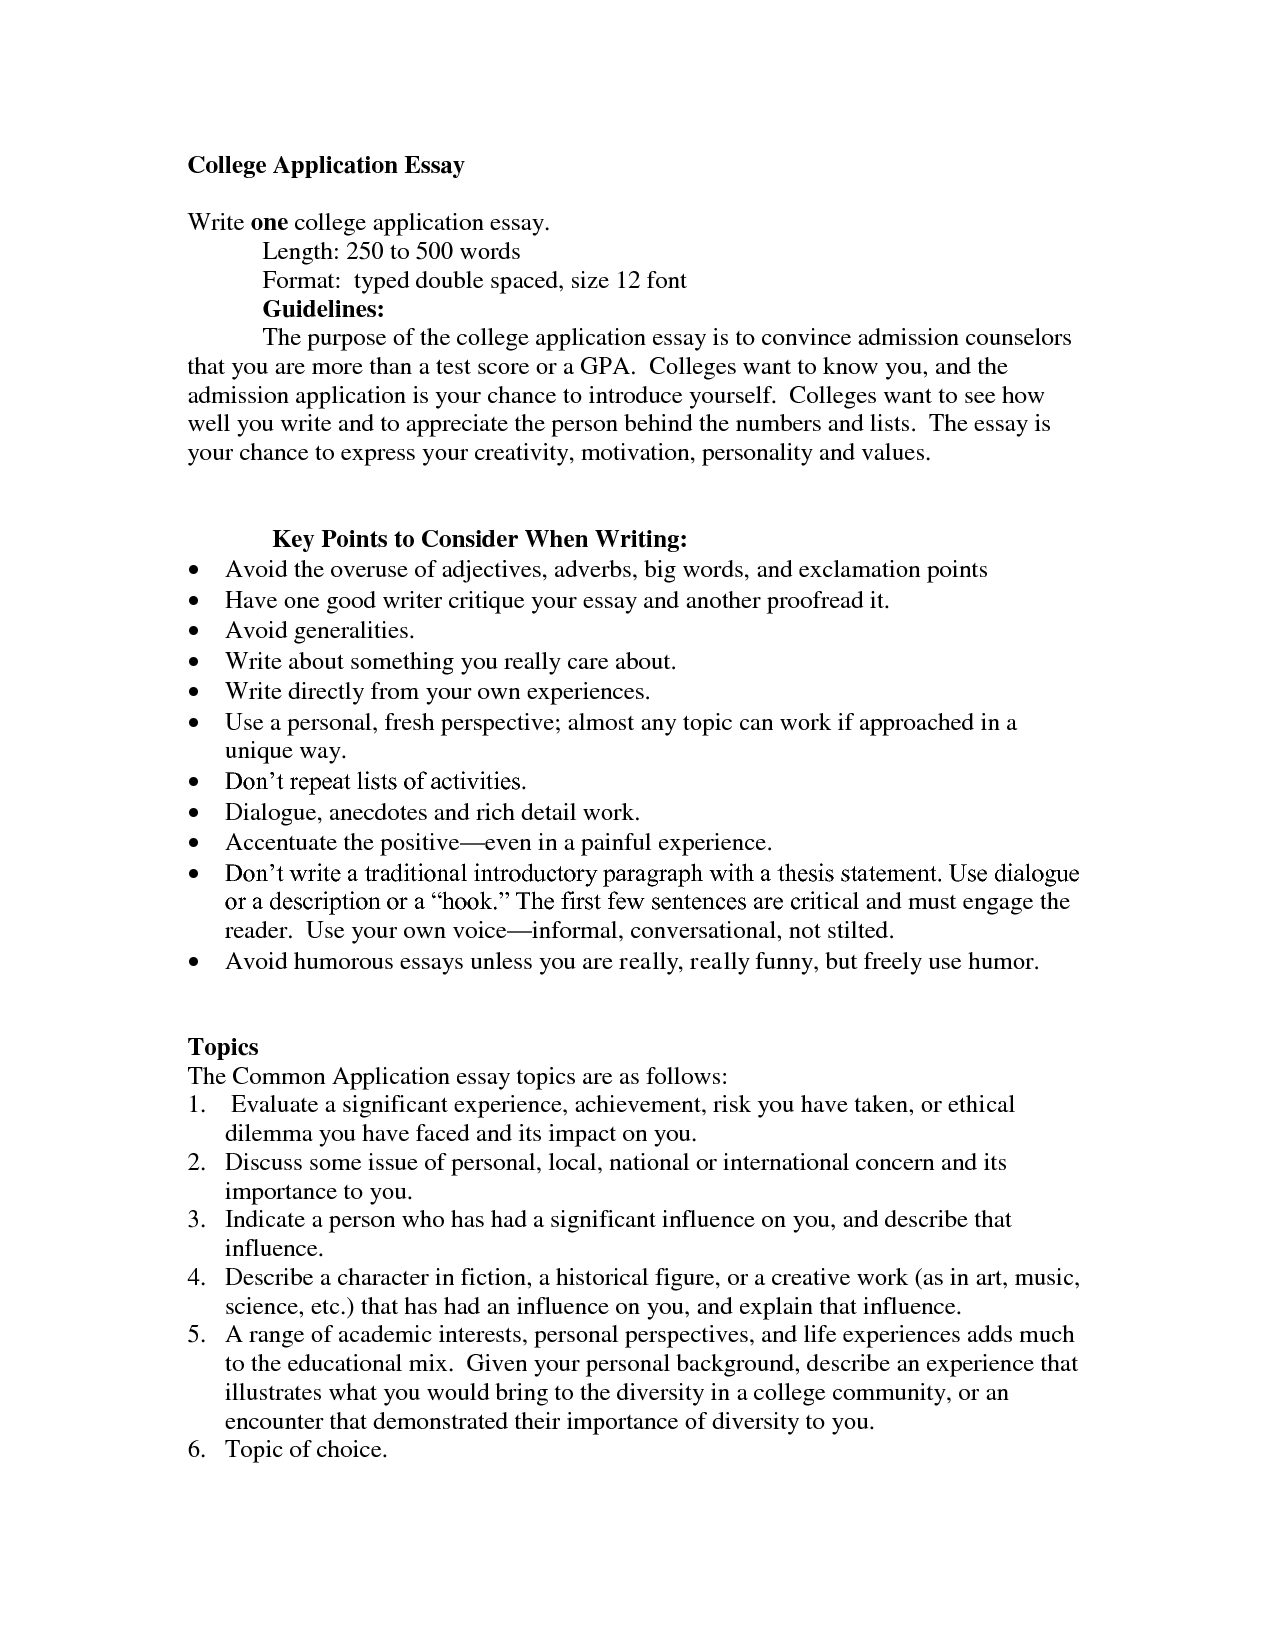 004 College Essay Header Application Heading Printables Corner For Ecza Solinf Co Int Admission Format Archaicawful Margins Full